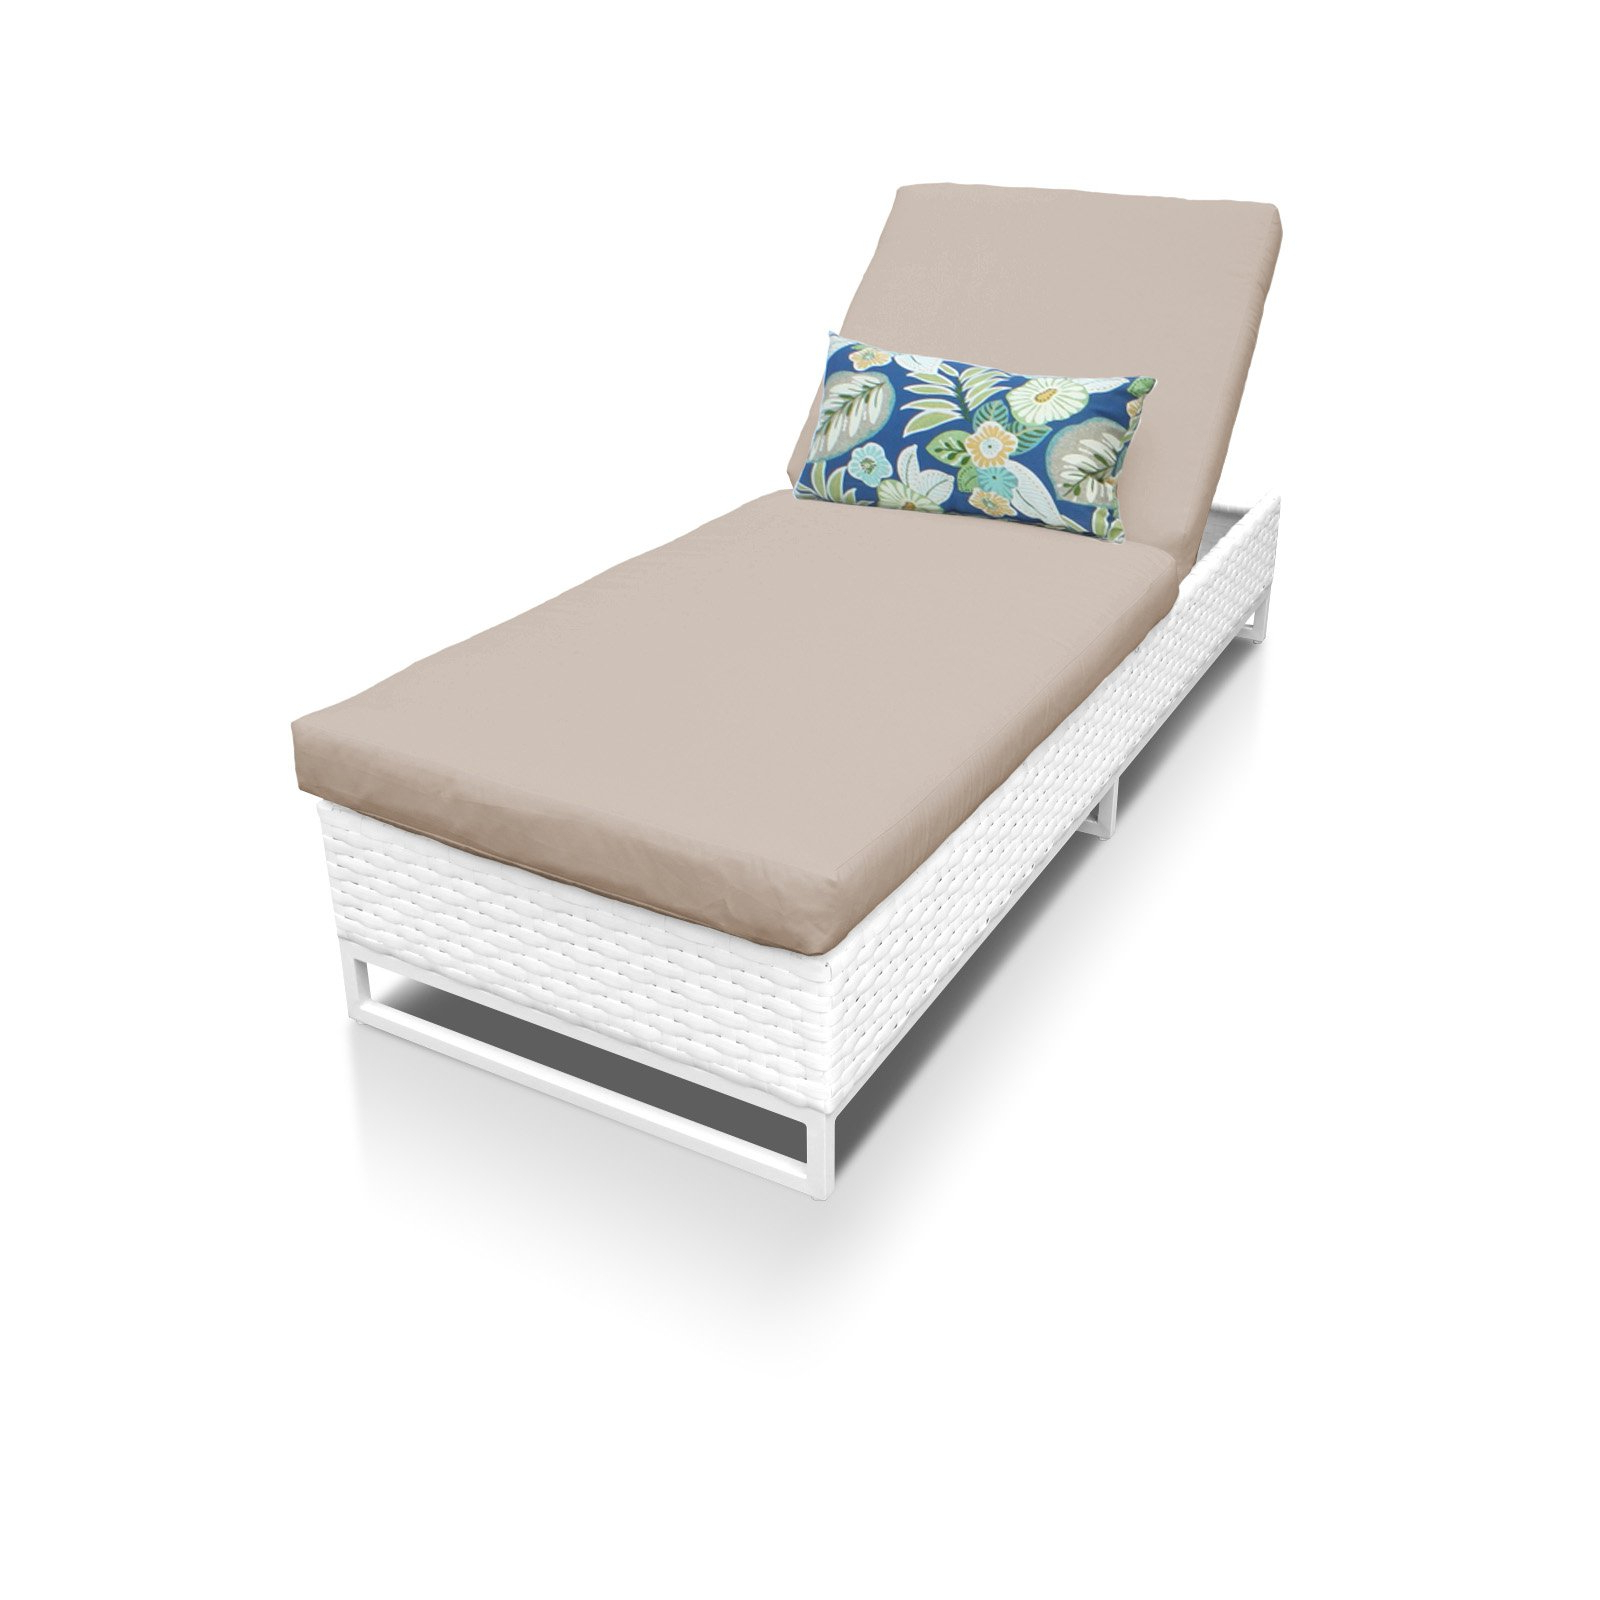 Well Known White Wicker Adjustable Chaise Loungers With Cushions In Outdoor Tk Classics Miami Adjustable Patio Chaise Lounge (View 8 of 25)